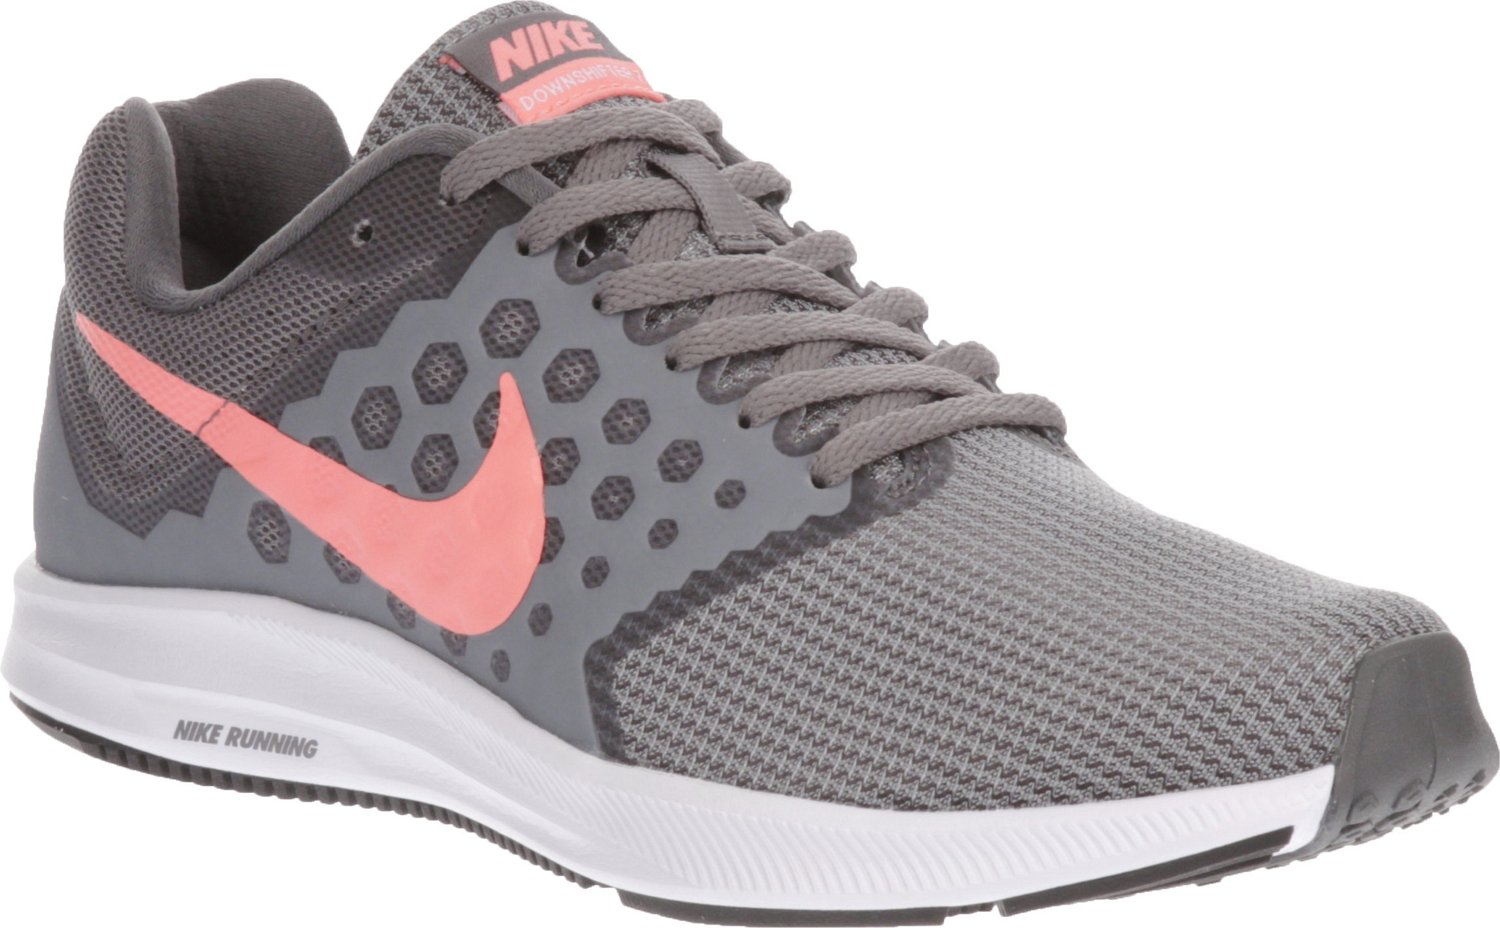 separation shoes 7c7a0 7e6f7 ... Nike Women s Downshifter 7 Running Shoes - view number 2 ...